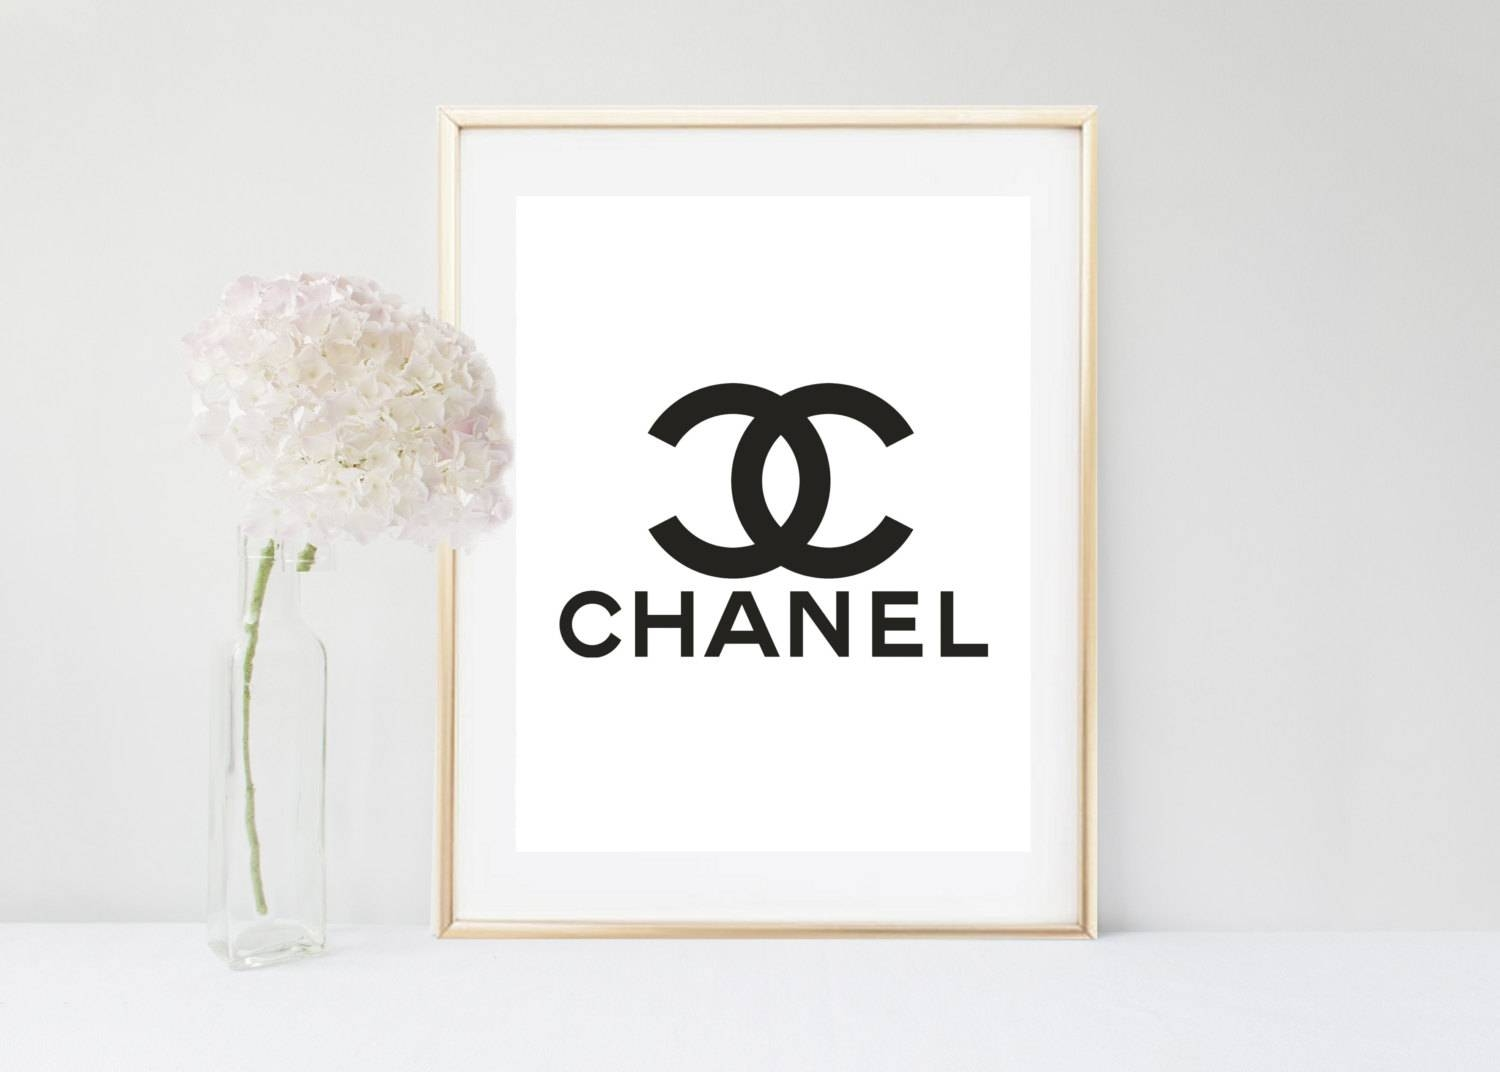 Chanel Wall Art Pink Chanel Logo Printable Art Coco Chanel Pertaining To Most Up To Date Chanel Wall Decor (View 7 of 25)